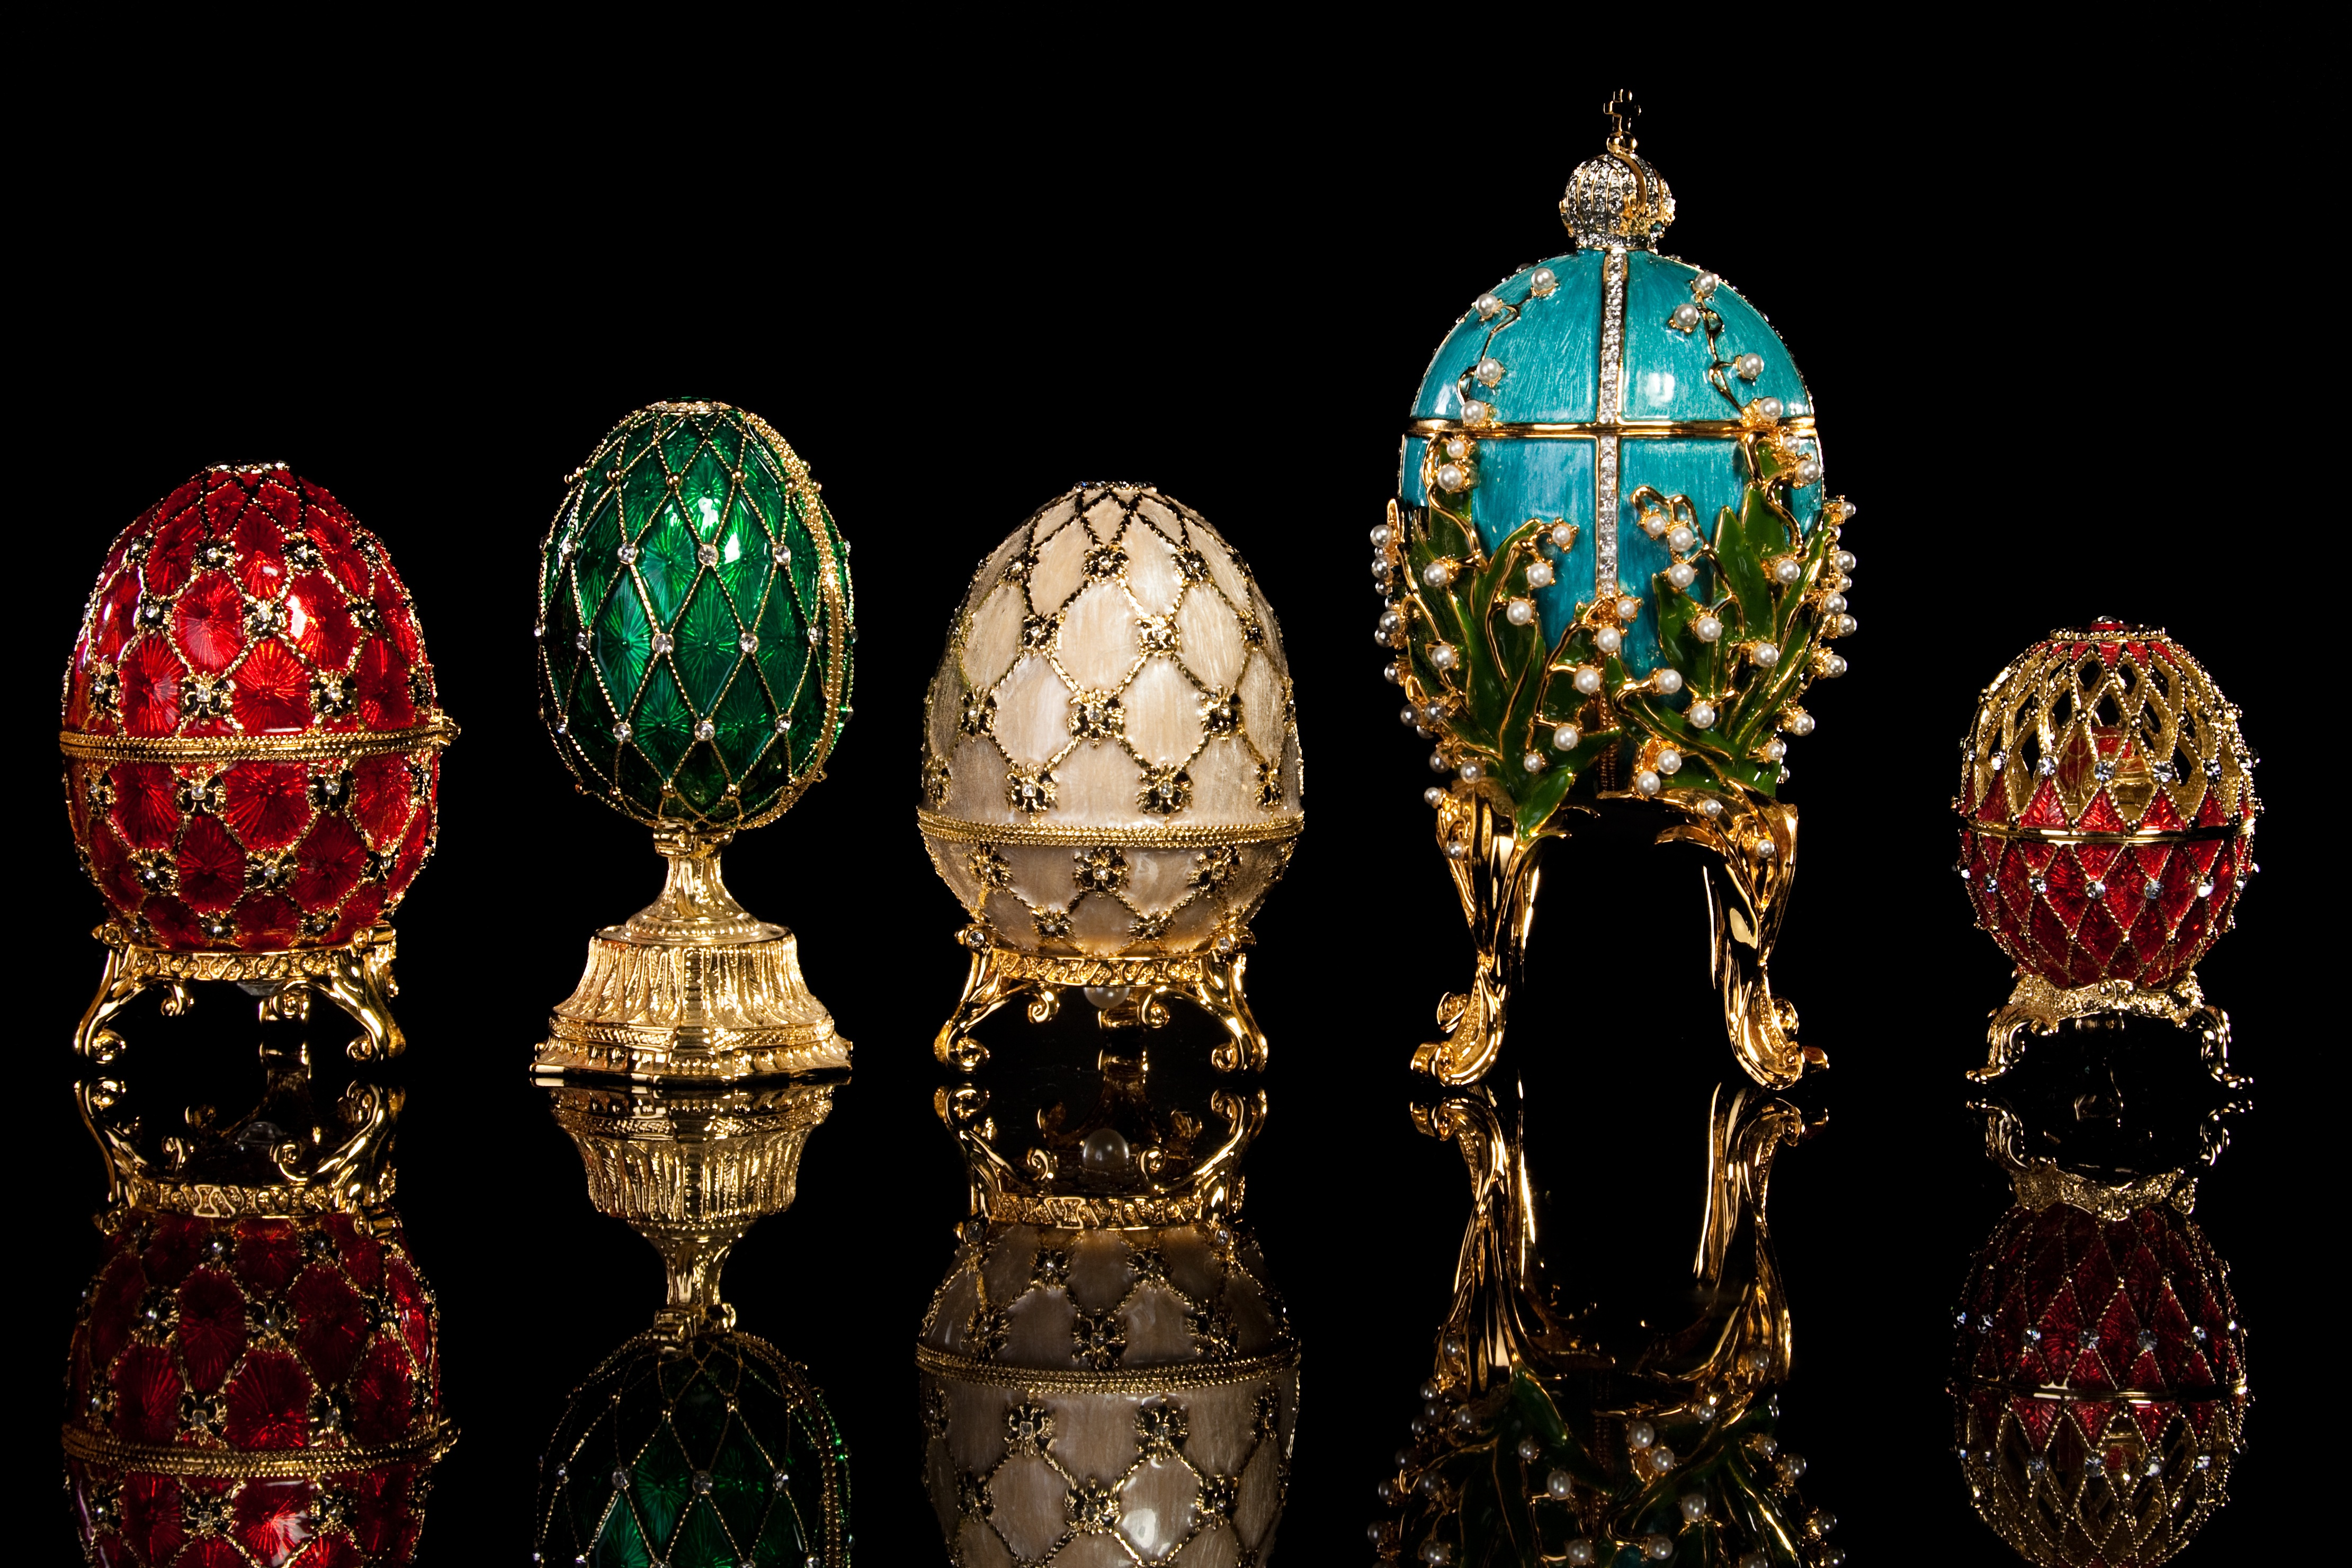 Brands are like Faberge eggs - precious and delicate